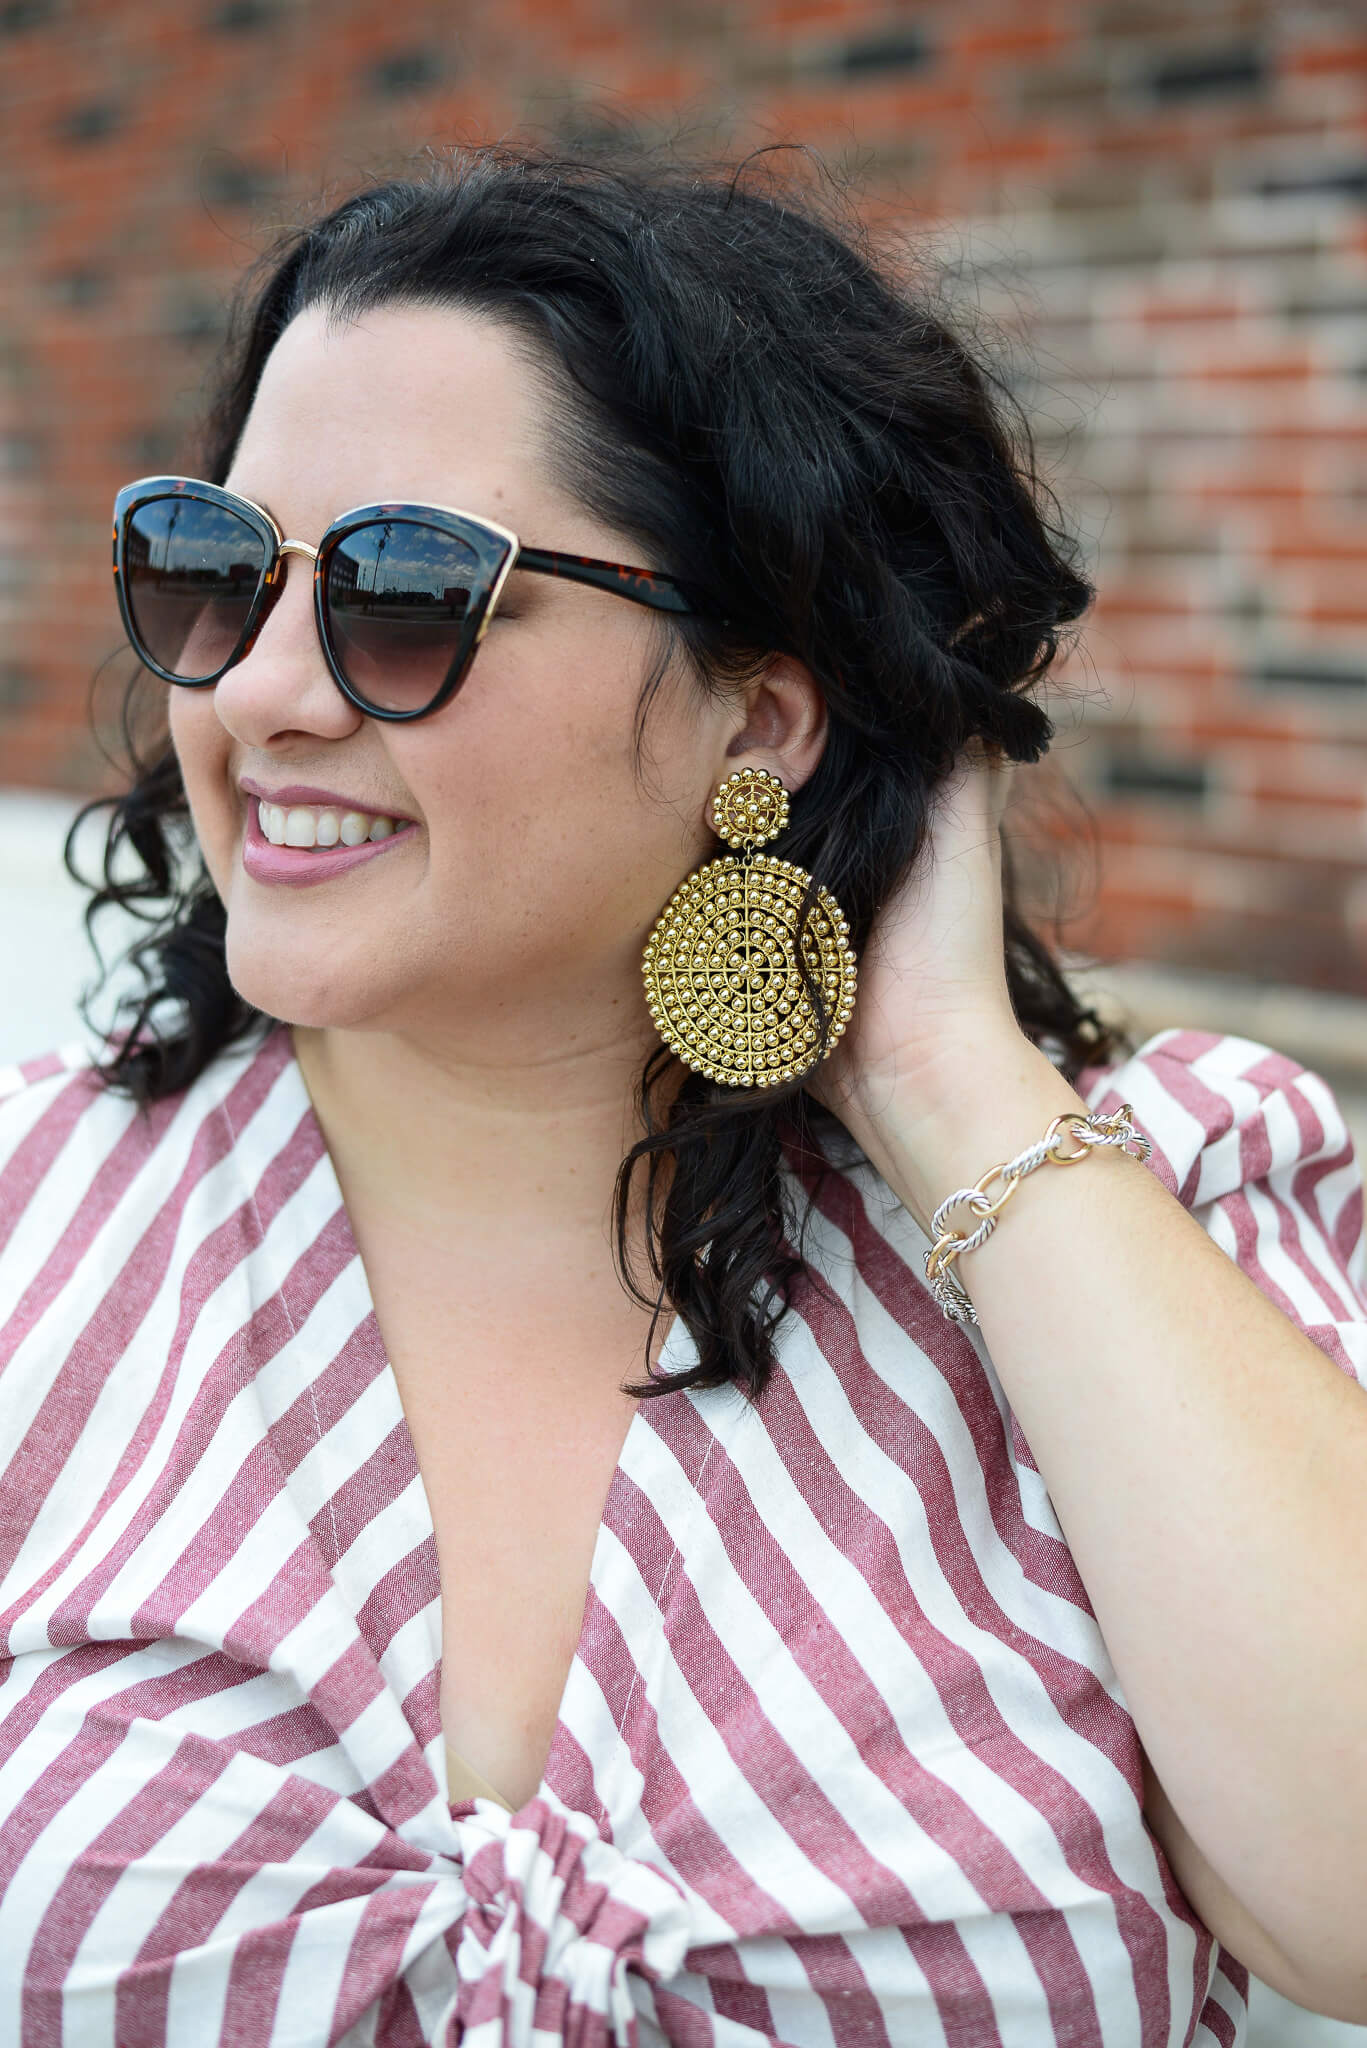 A statement earring easily adds a pop of fun without the added bulk